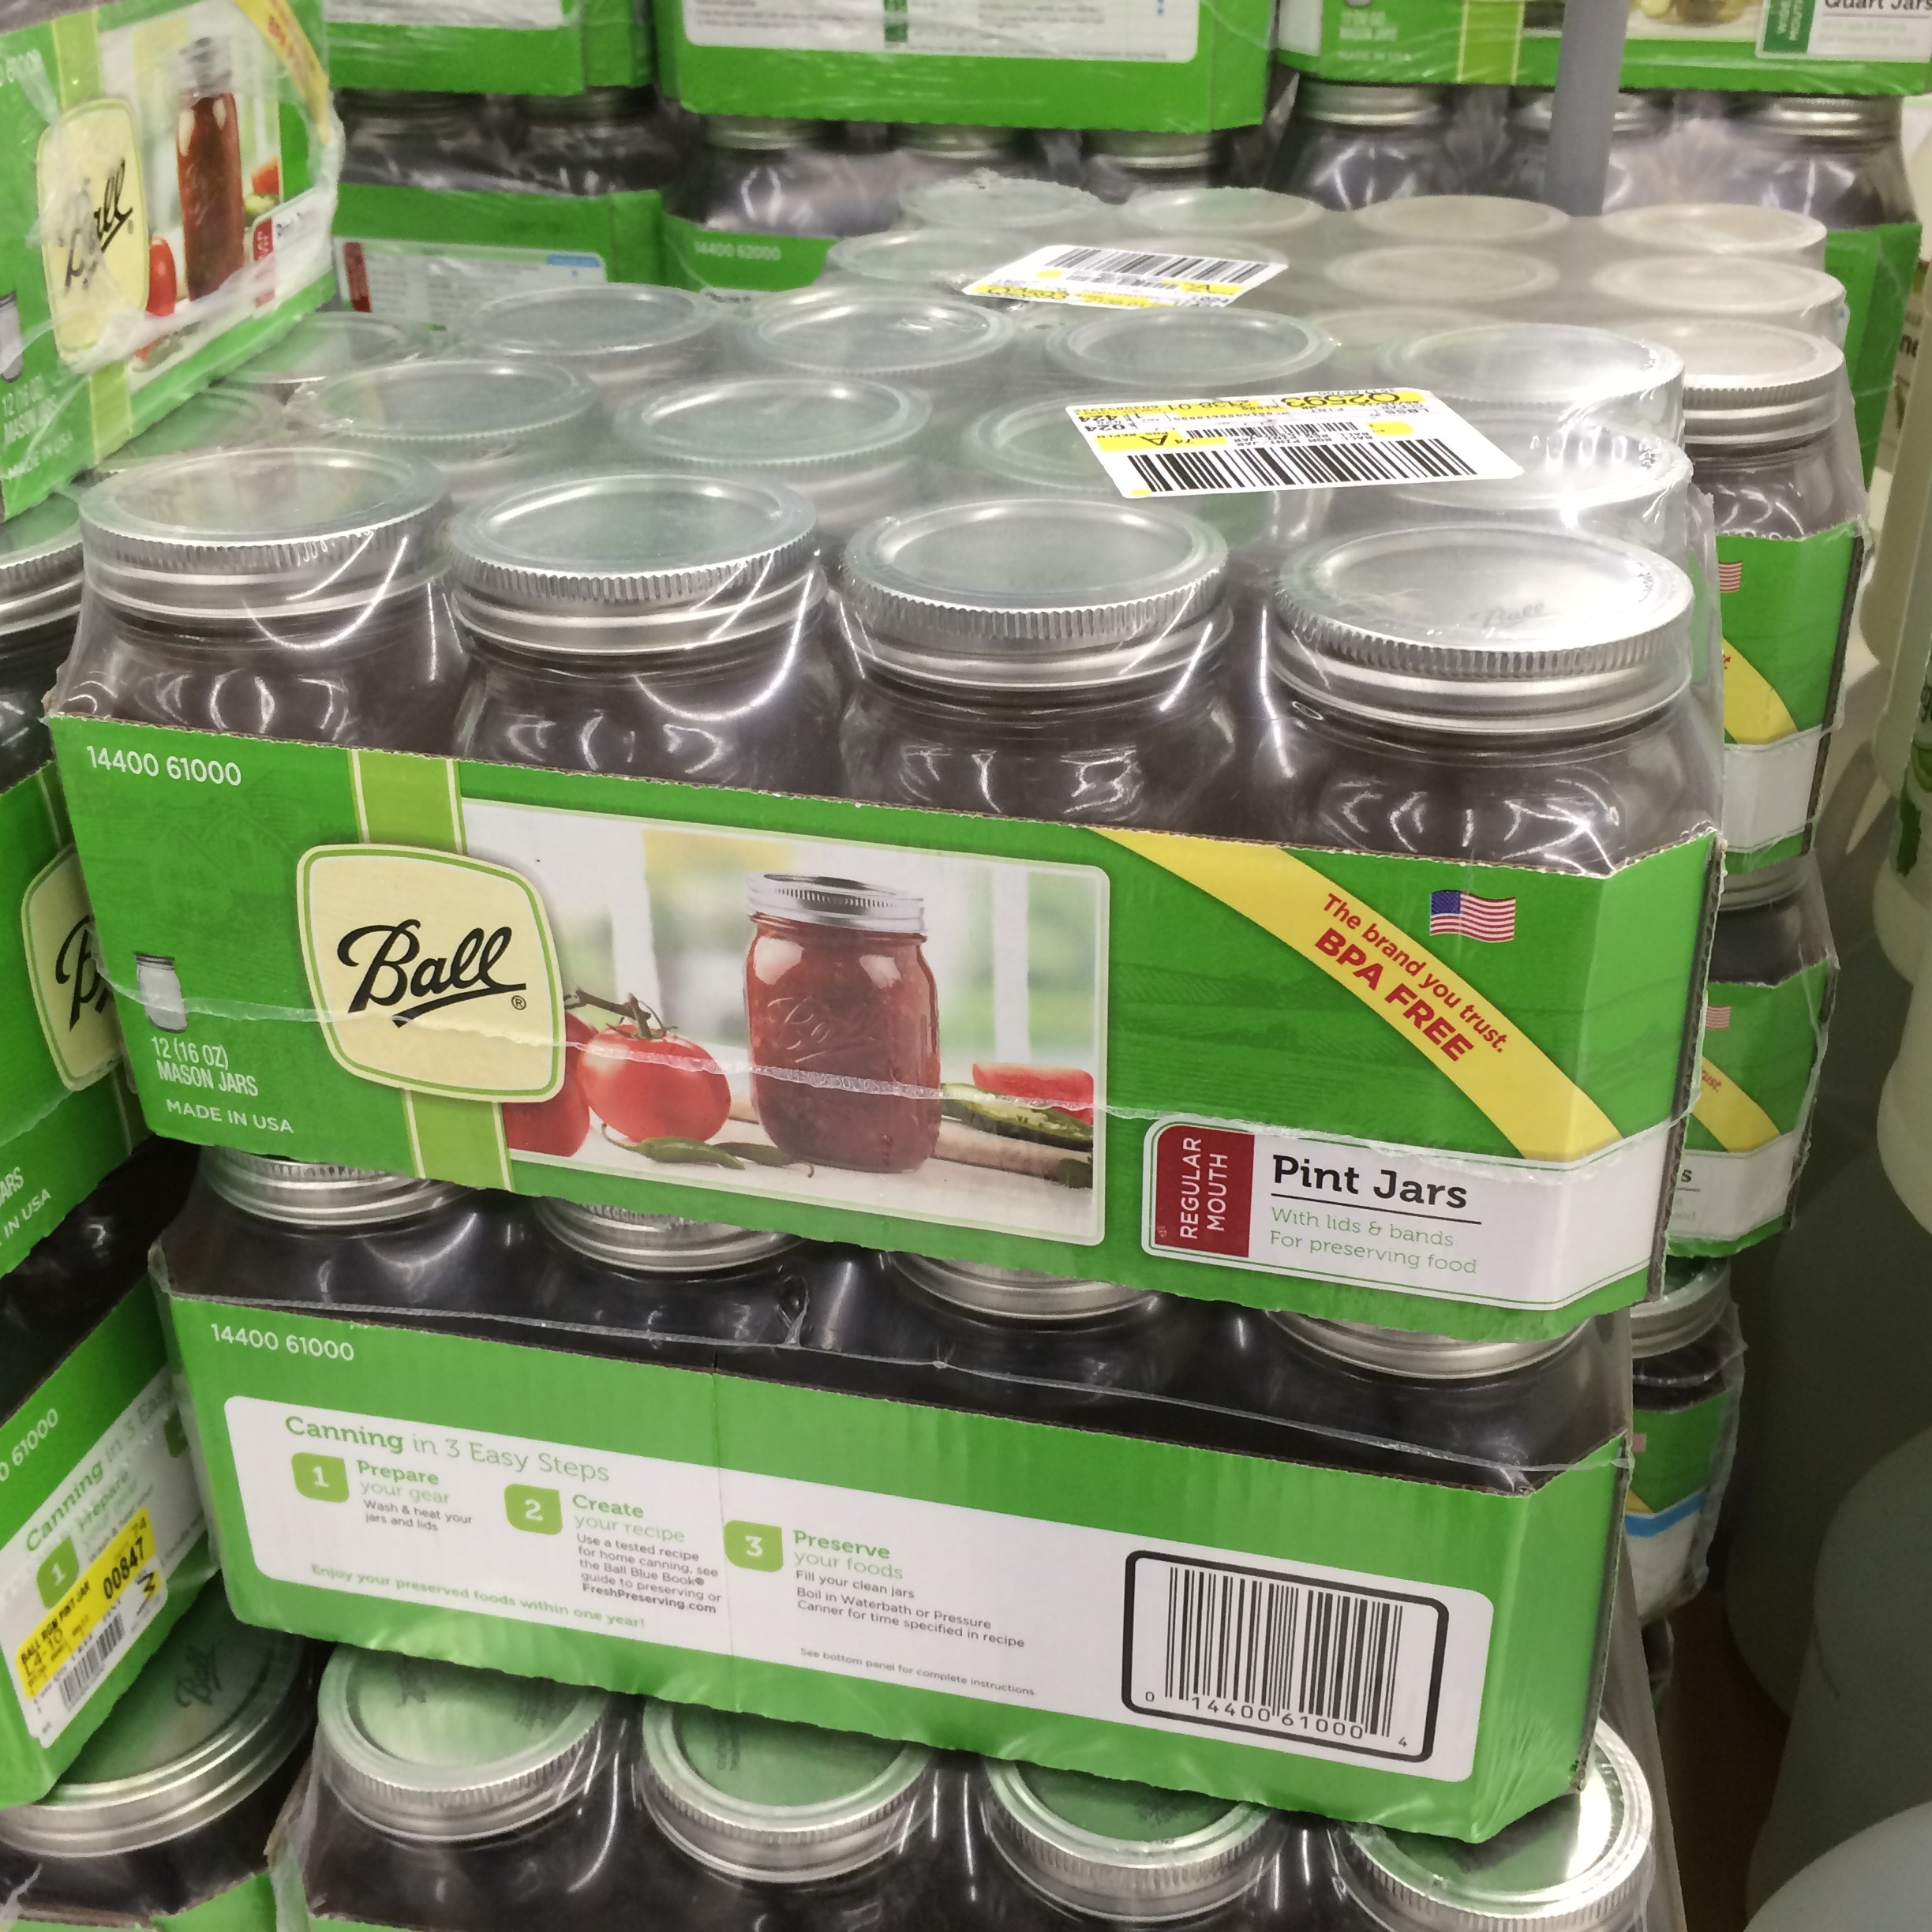 Pint mason jars by Ball…seen at Wal-Mart yesterday! They make amazing glasses for cold beverages.